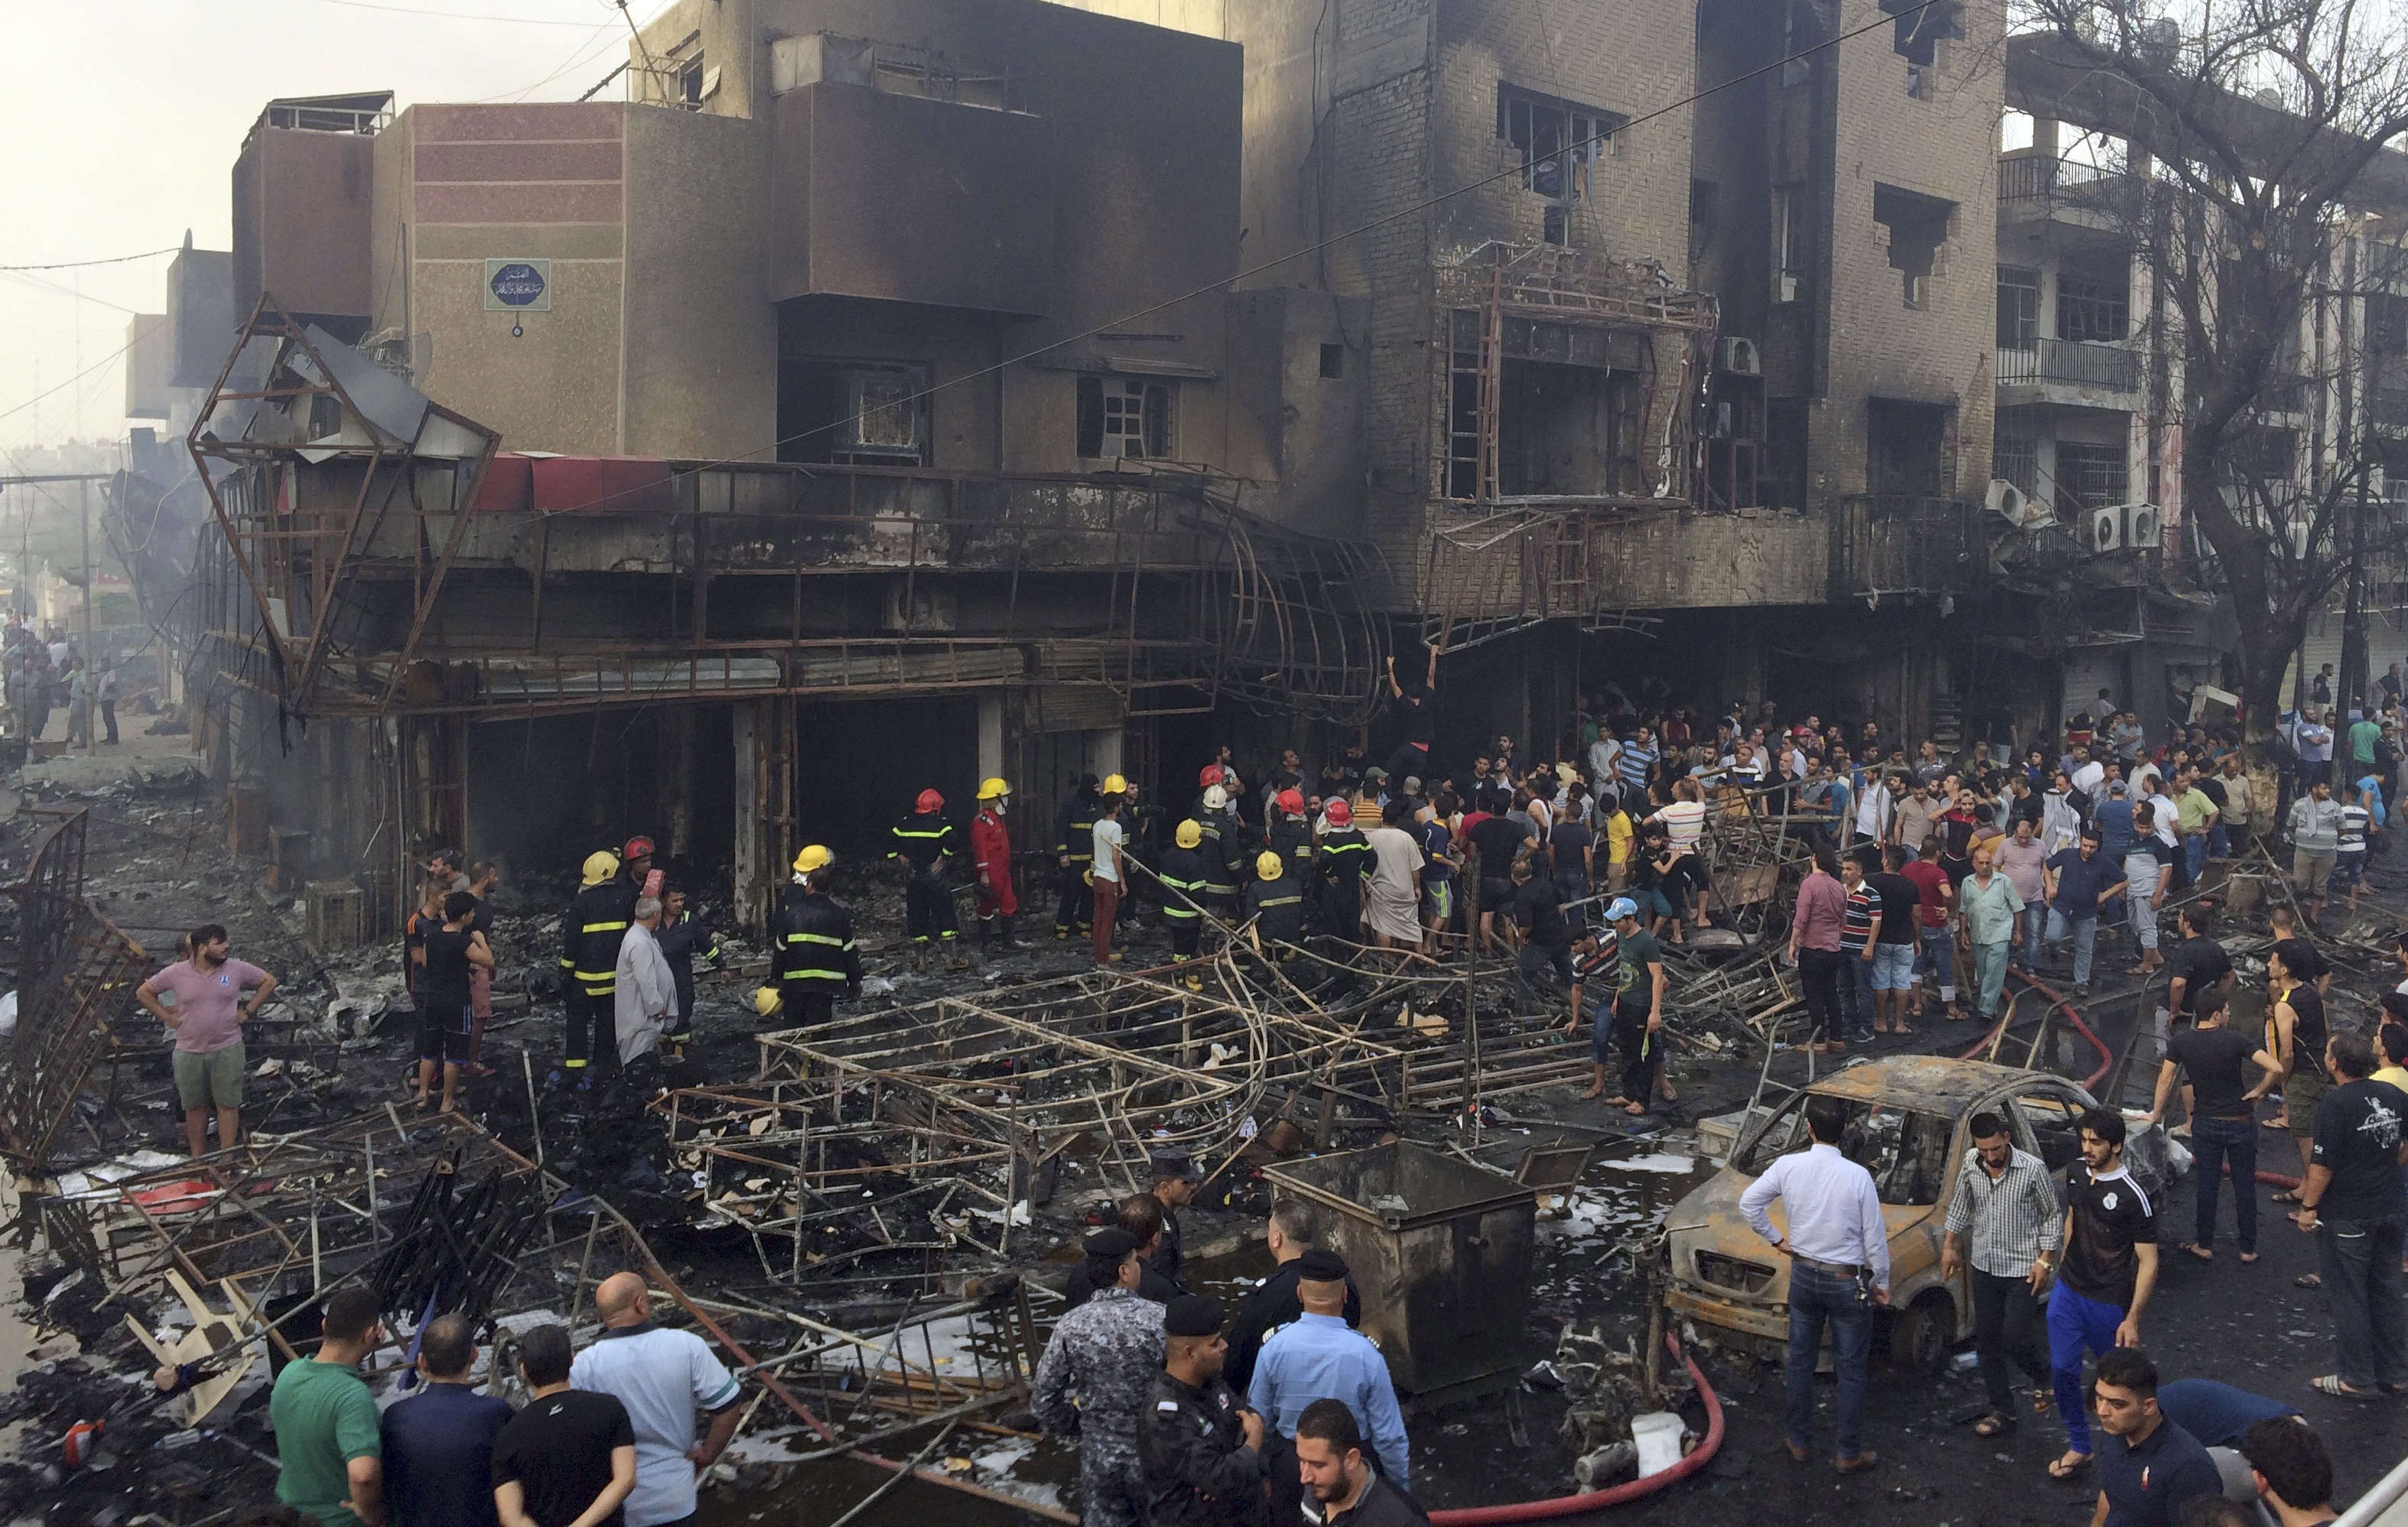 ISIS Carried Out Its Deadliest Attack And No One Cared PA 26776181